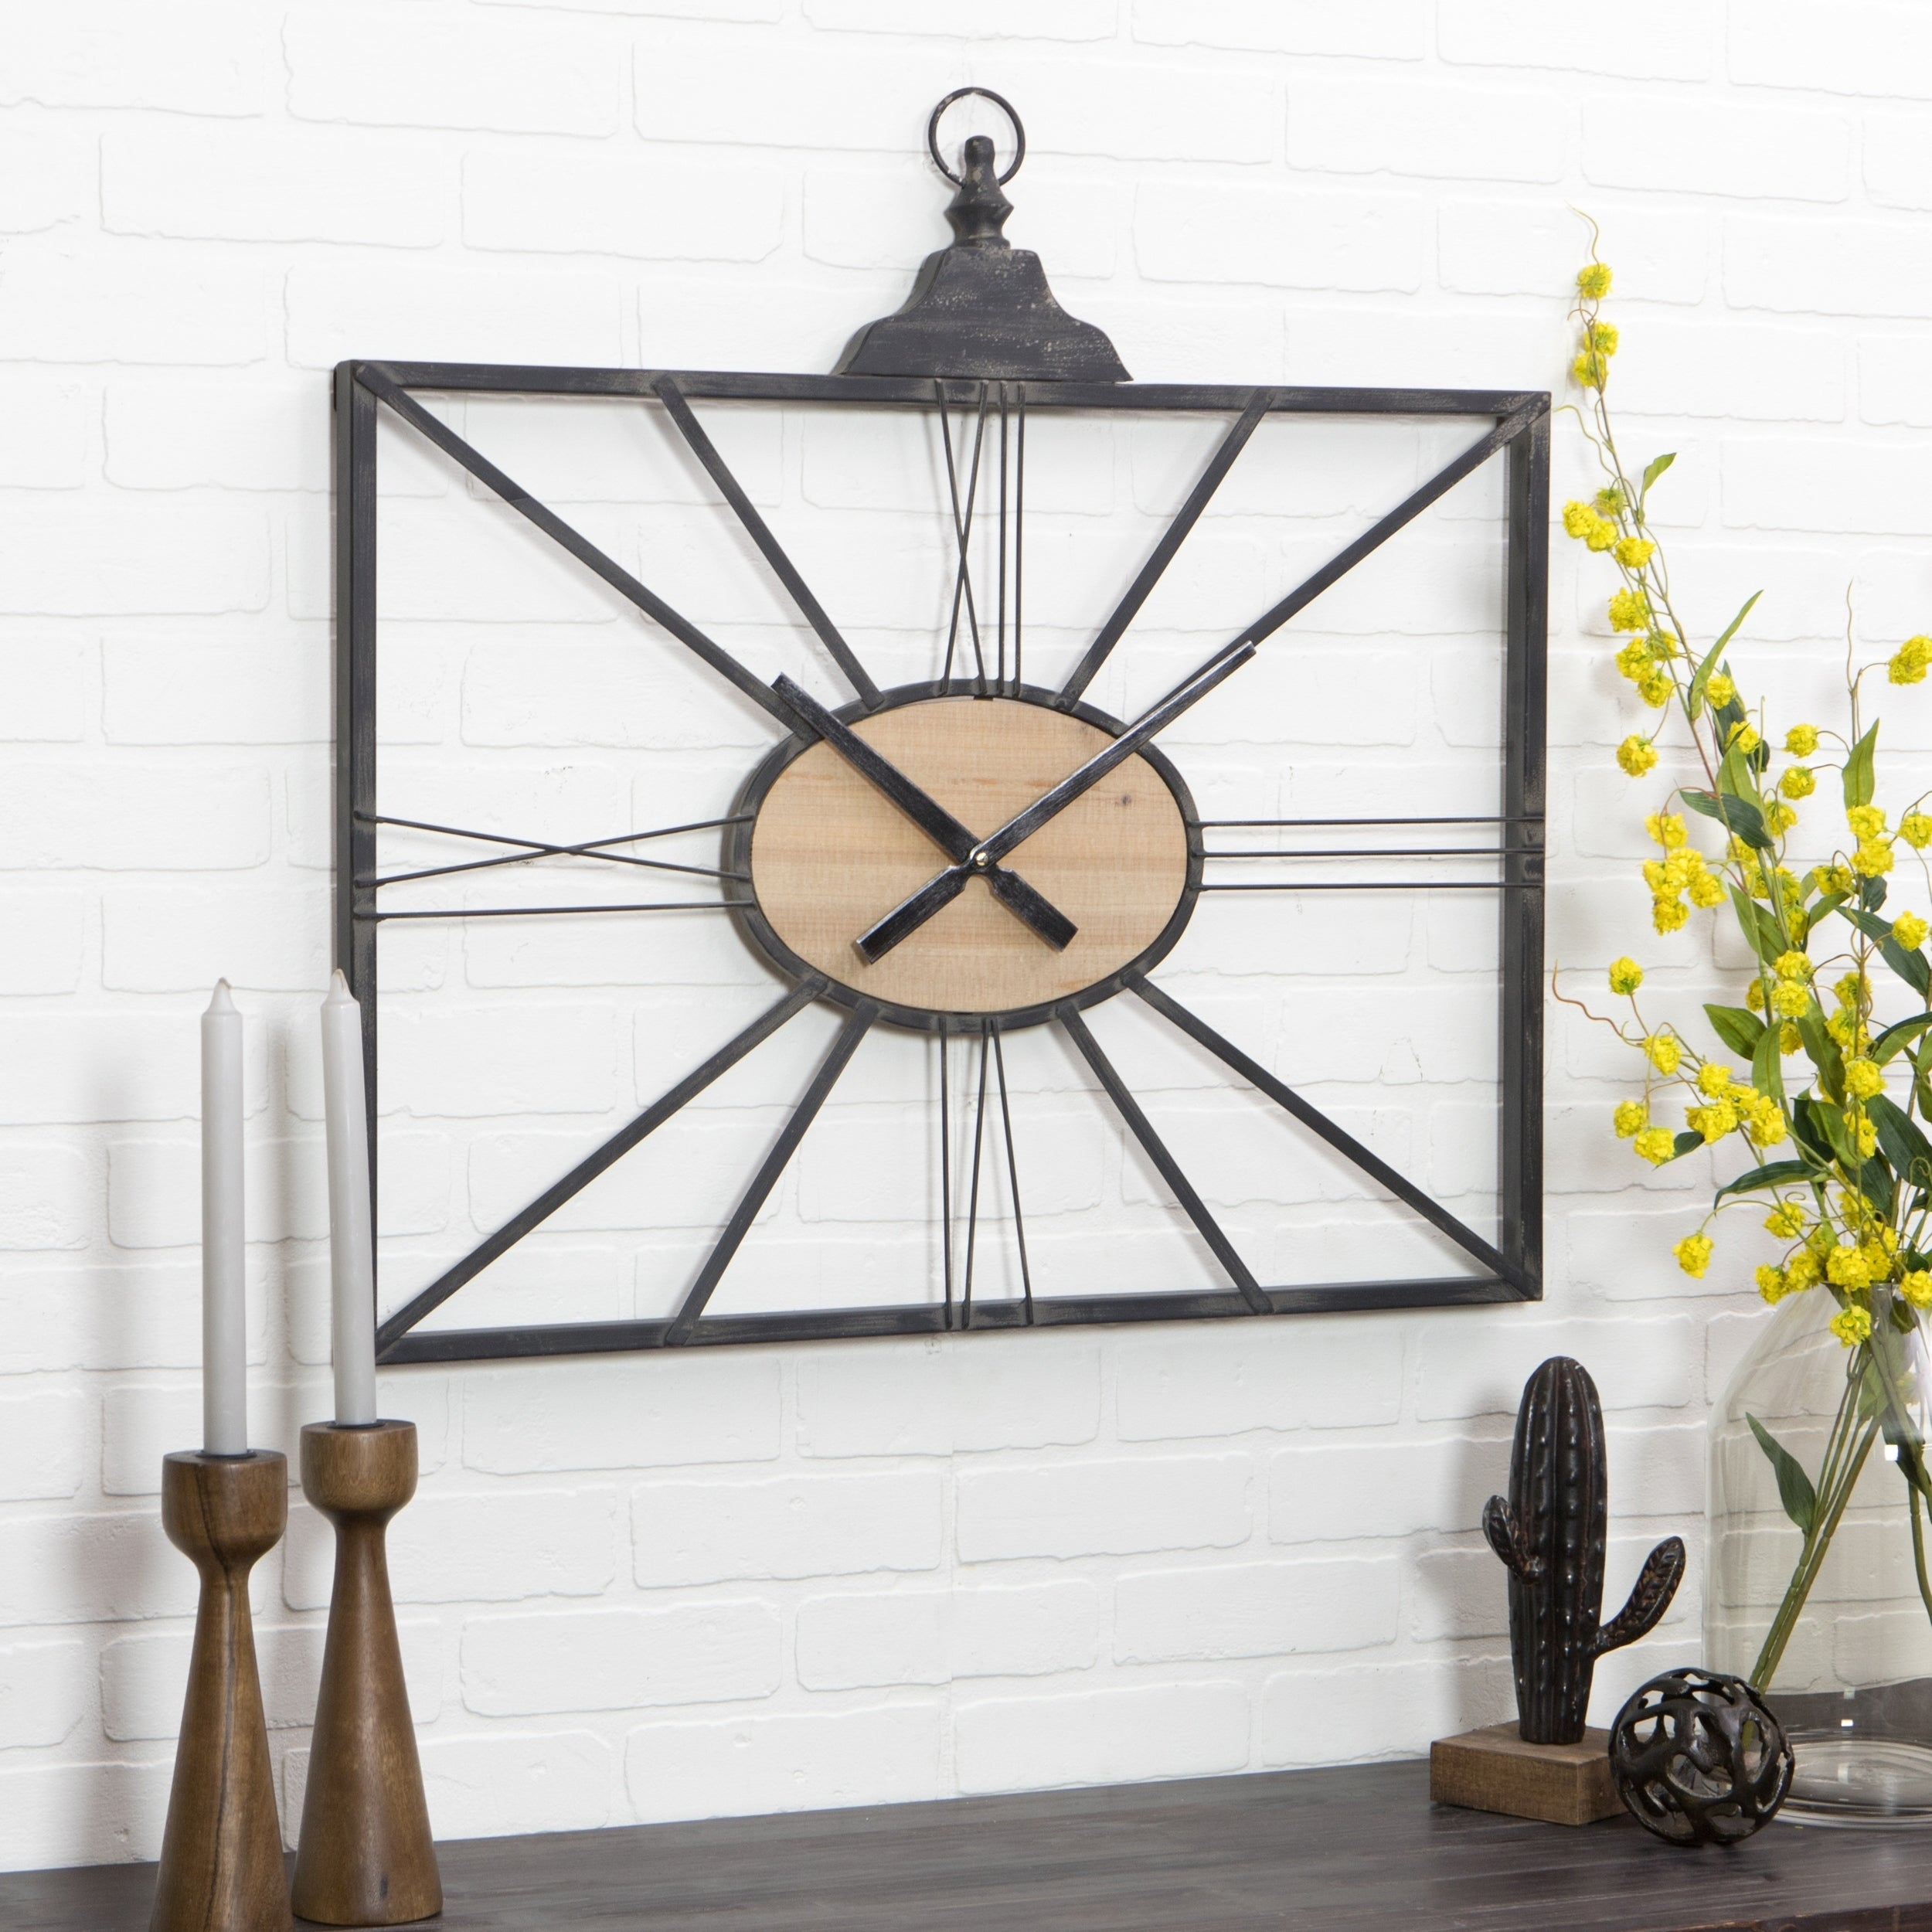 Shop astor mid century wall clock free shipping today overstock com 16303930